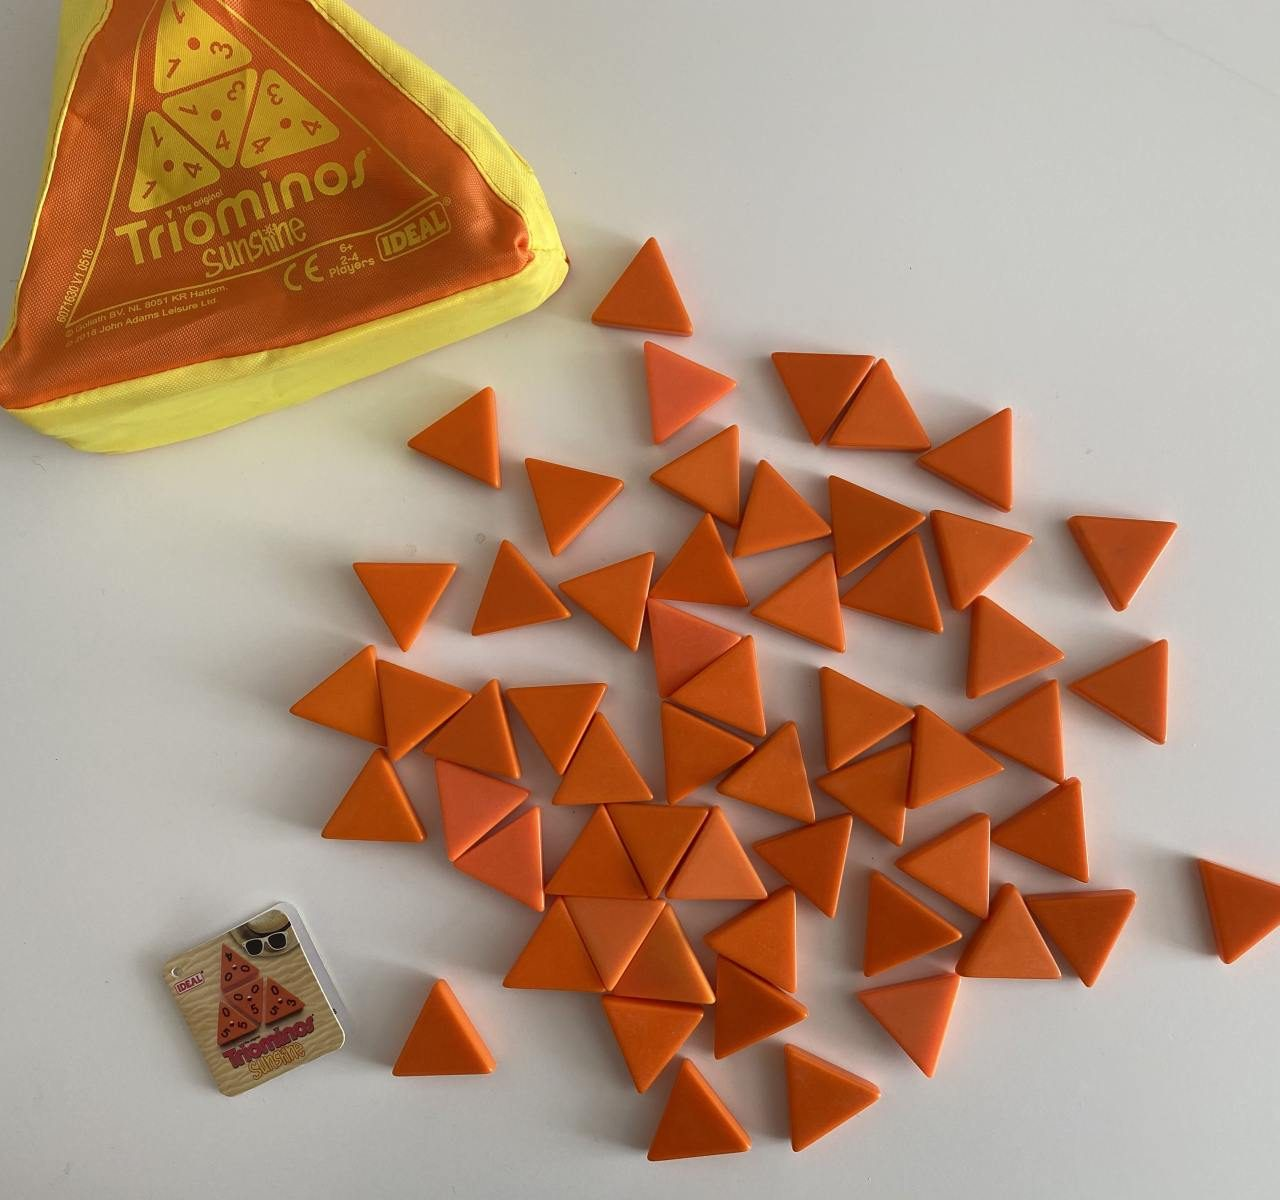 Family boredom busters with Ideal Games – Triominos